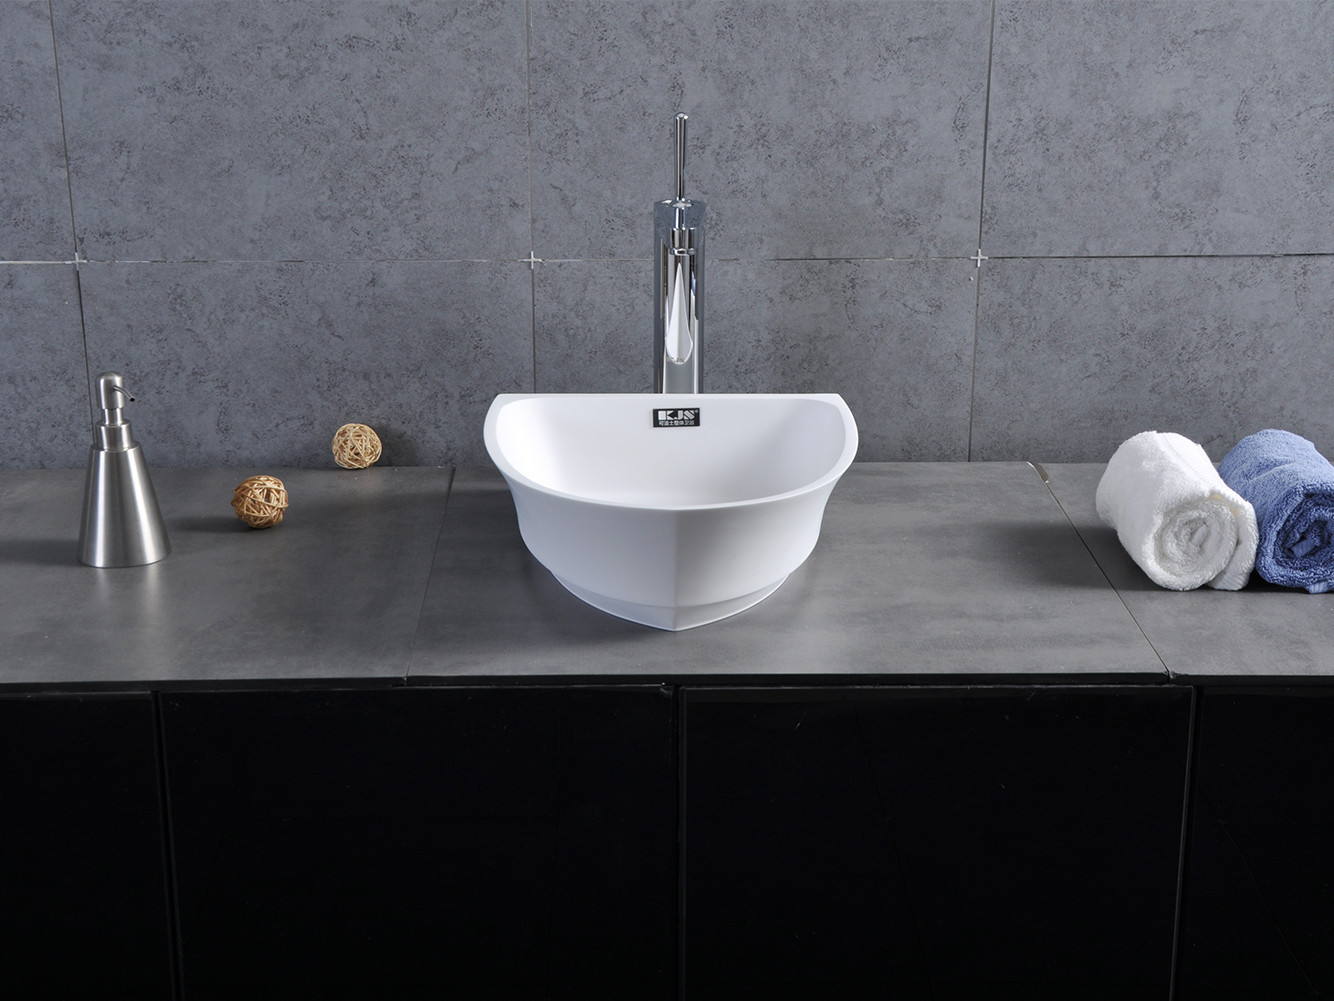 Hot countertop basin colorful Bellissimo Brand